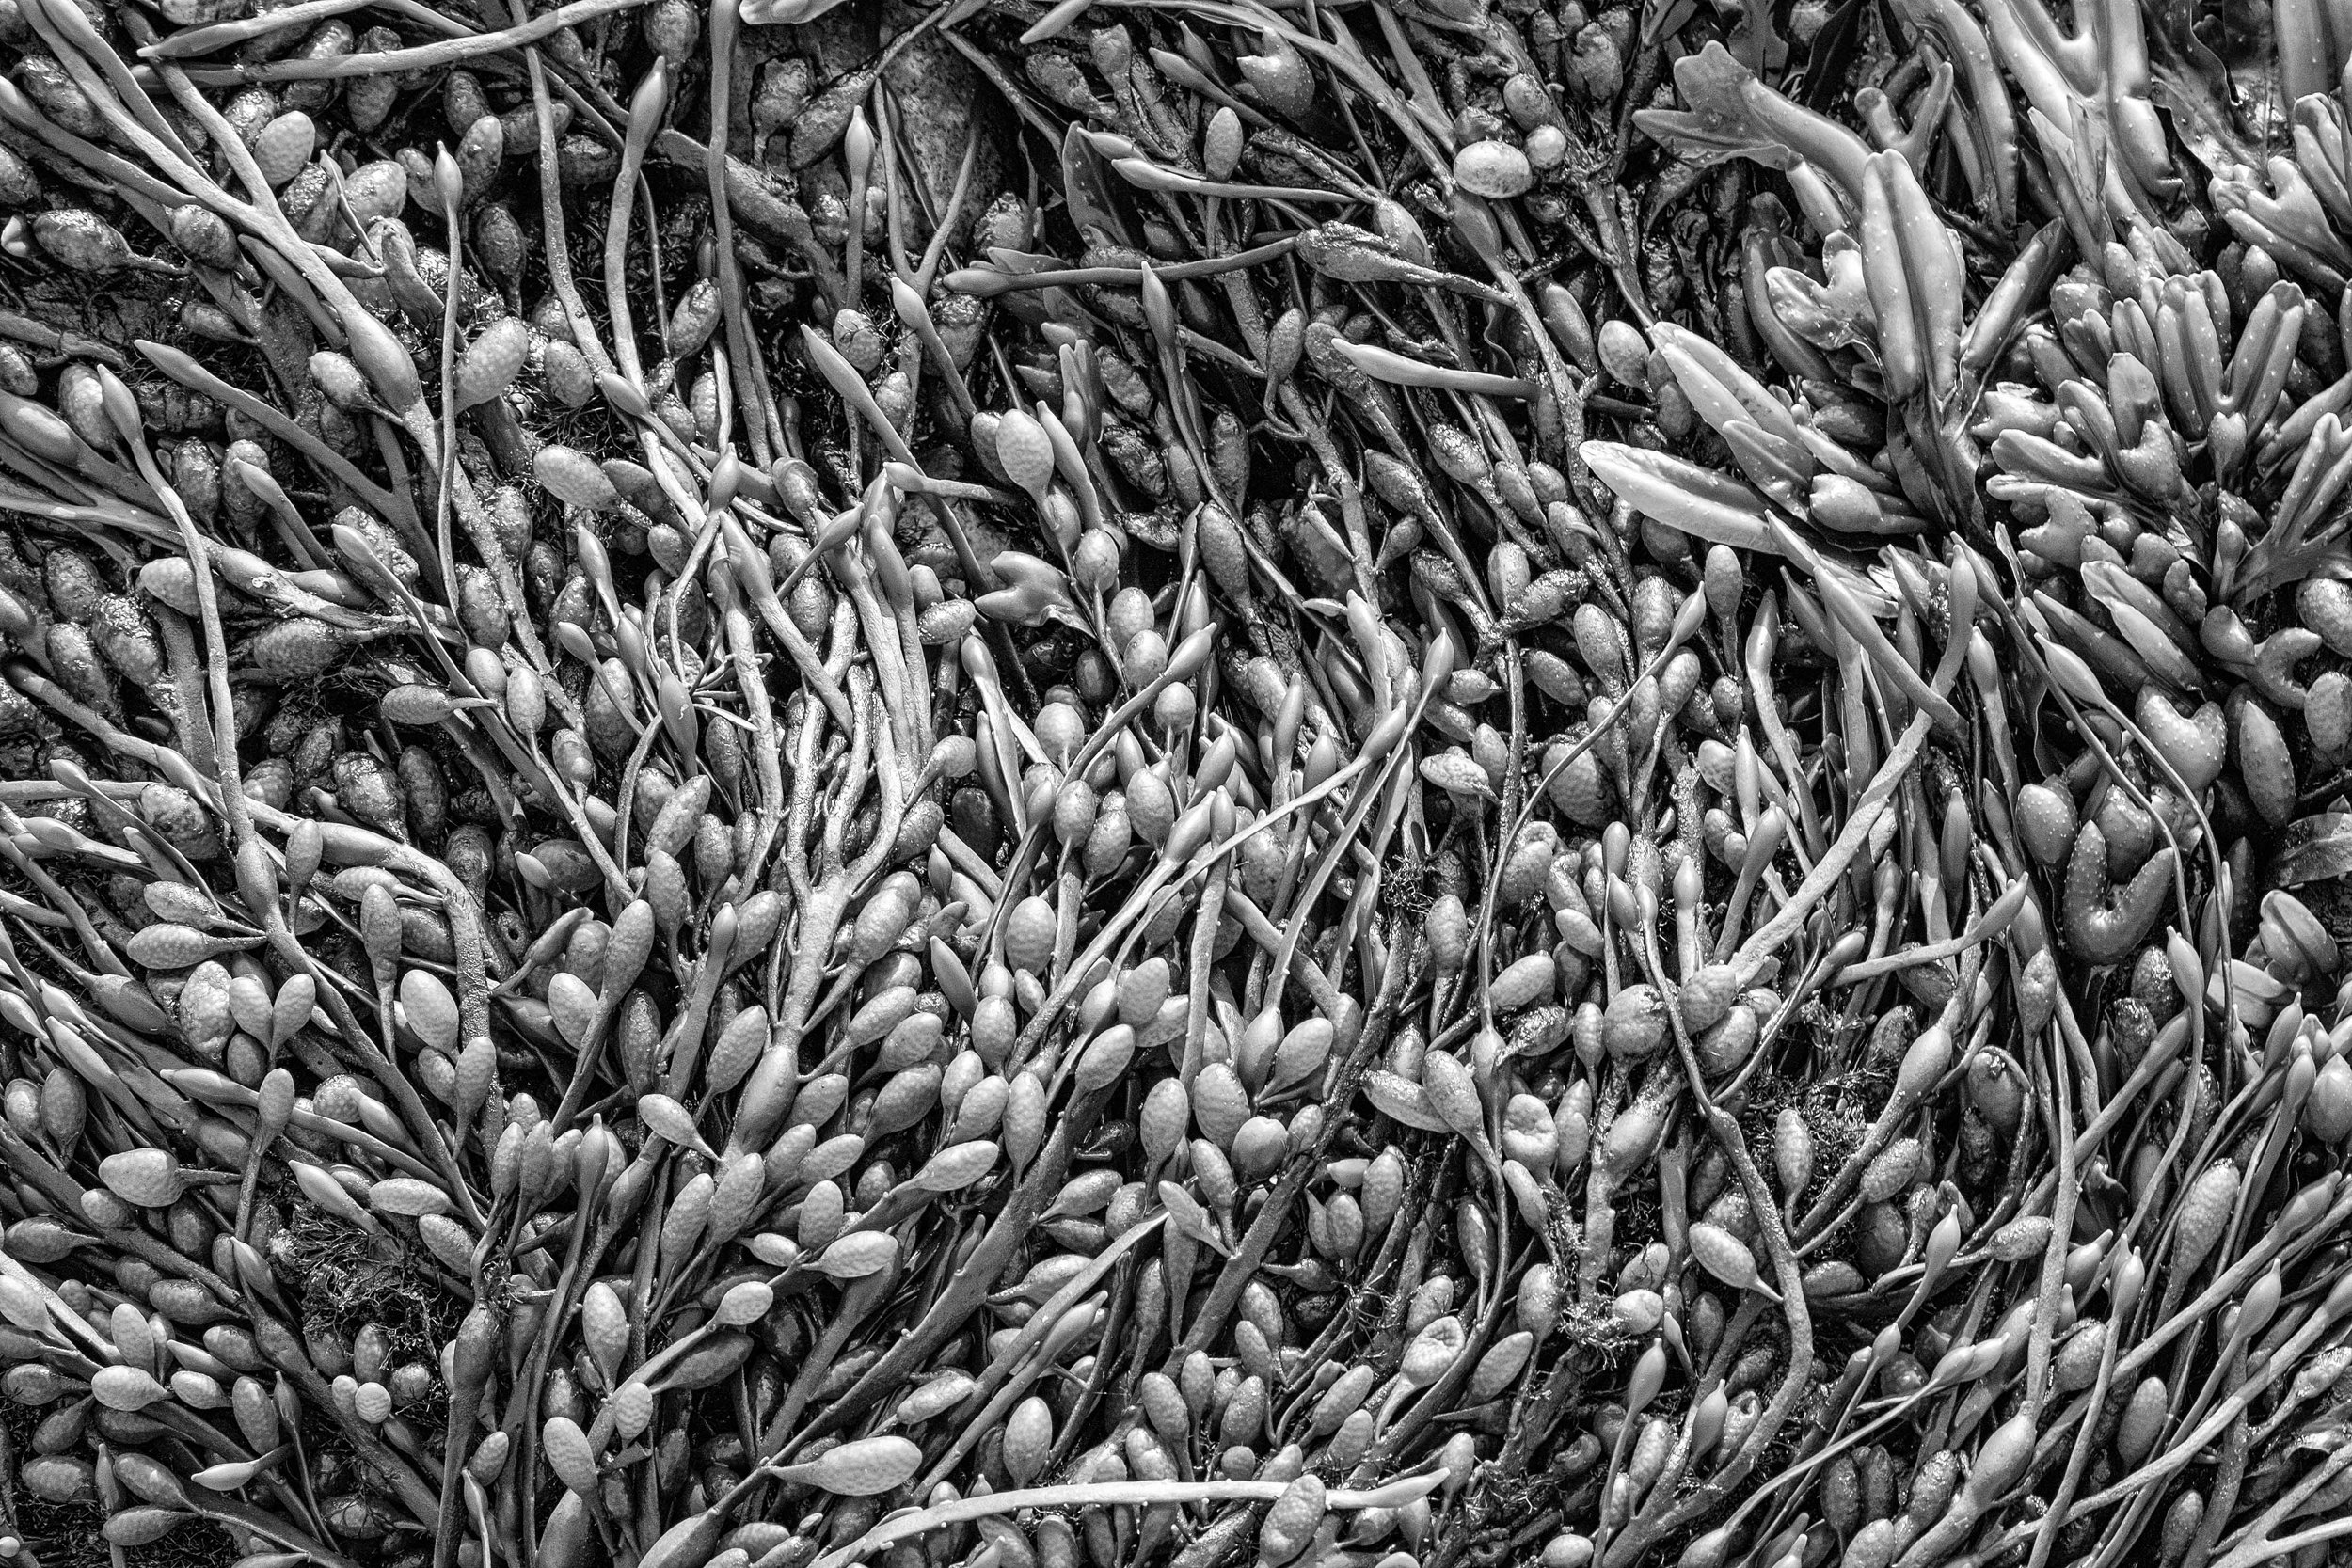 Sea kelp in black and white at Acadia National Park in Maine.